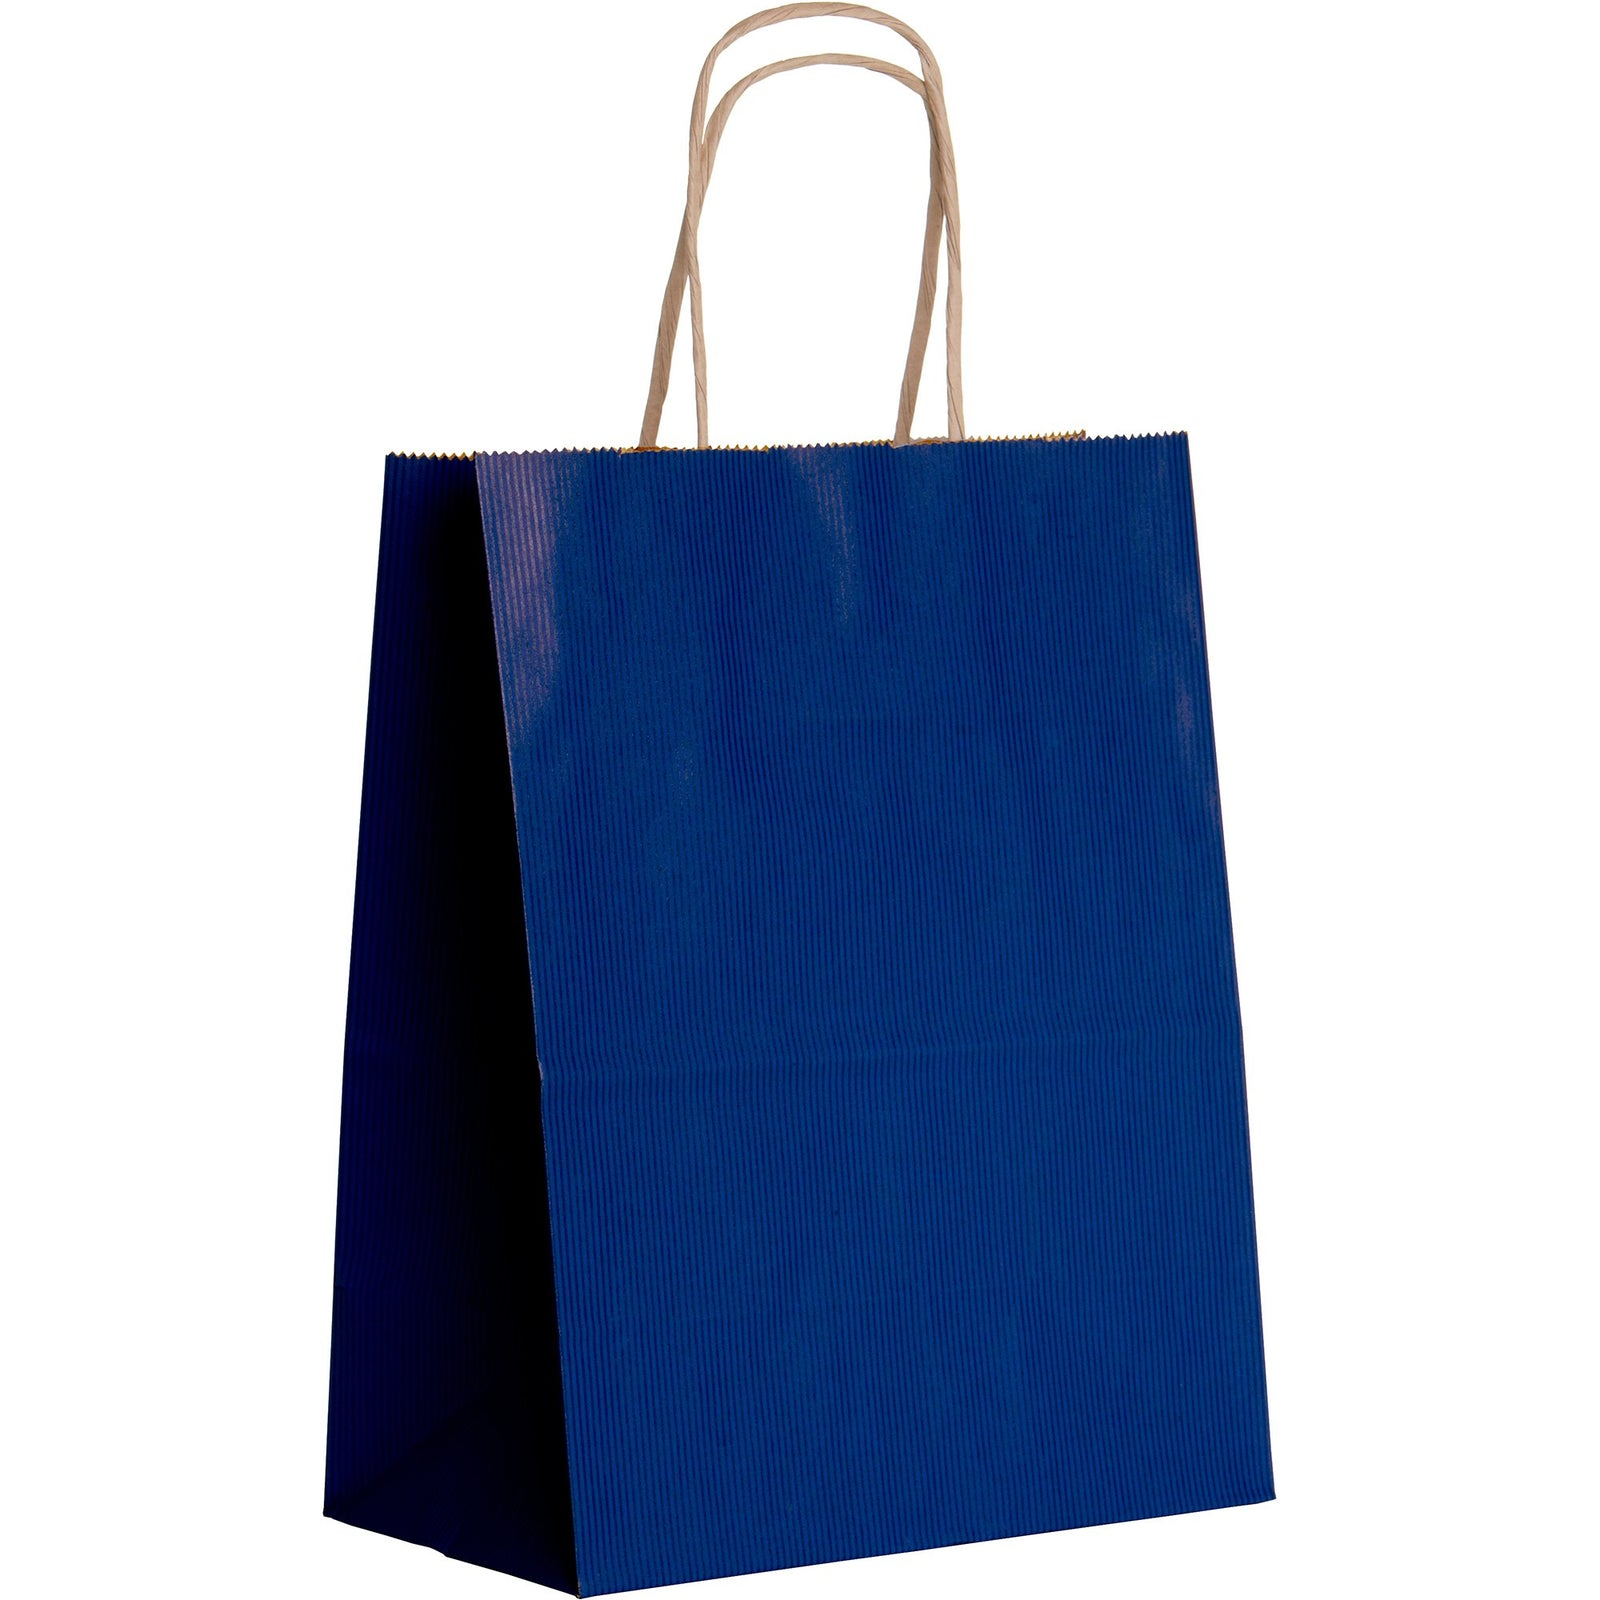 Jillson & Roberts Medium Kraft Bags, Navy